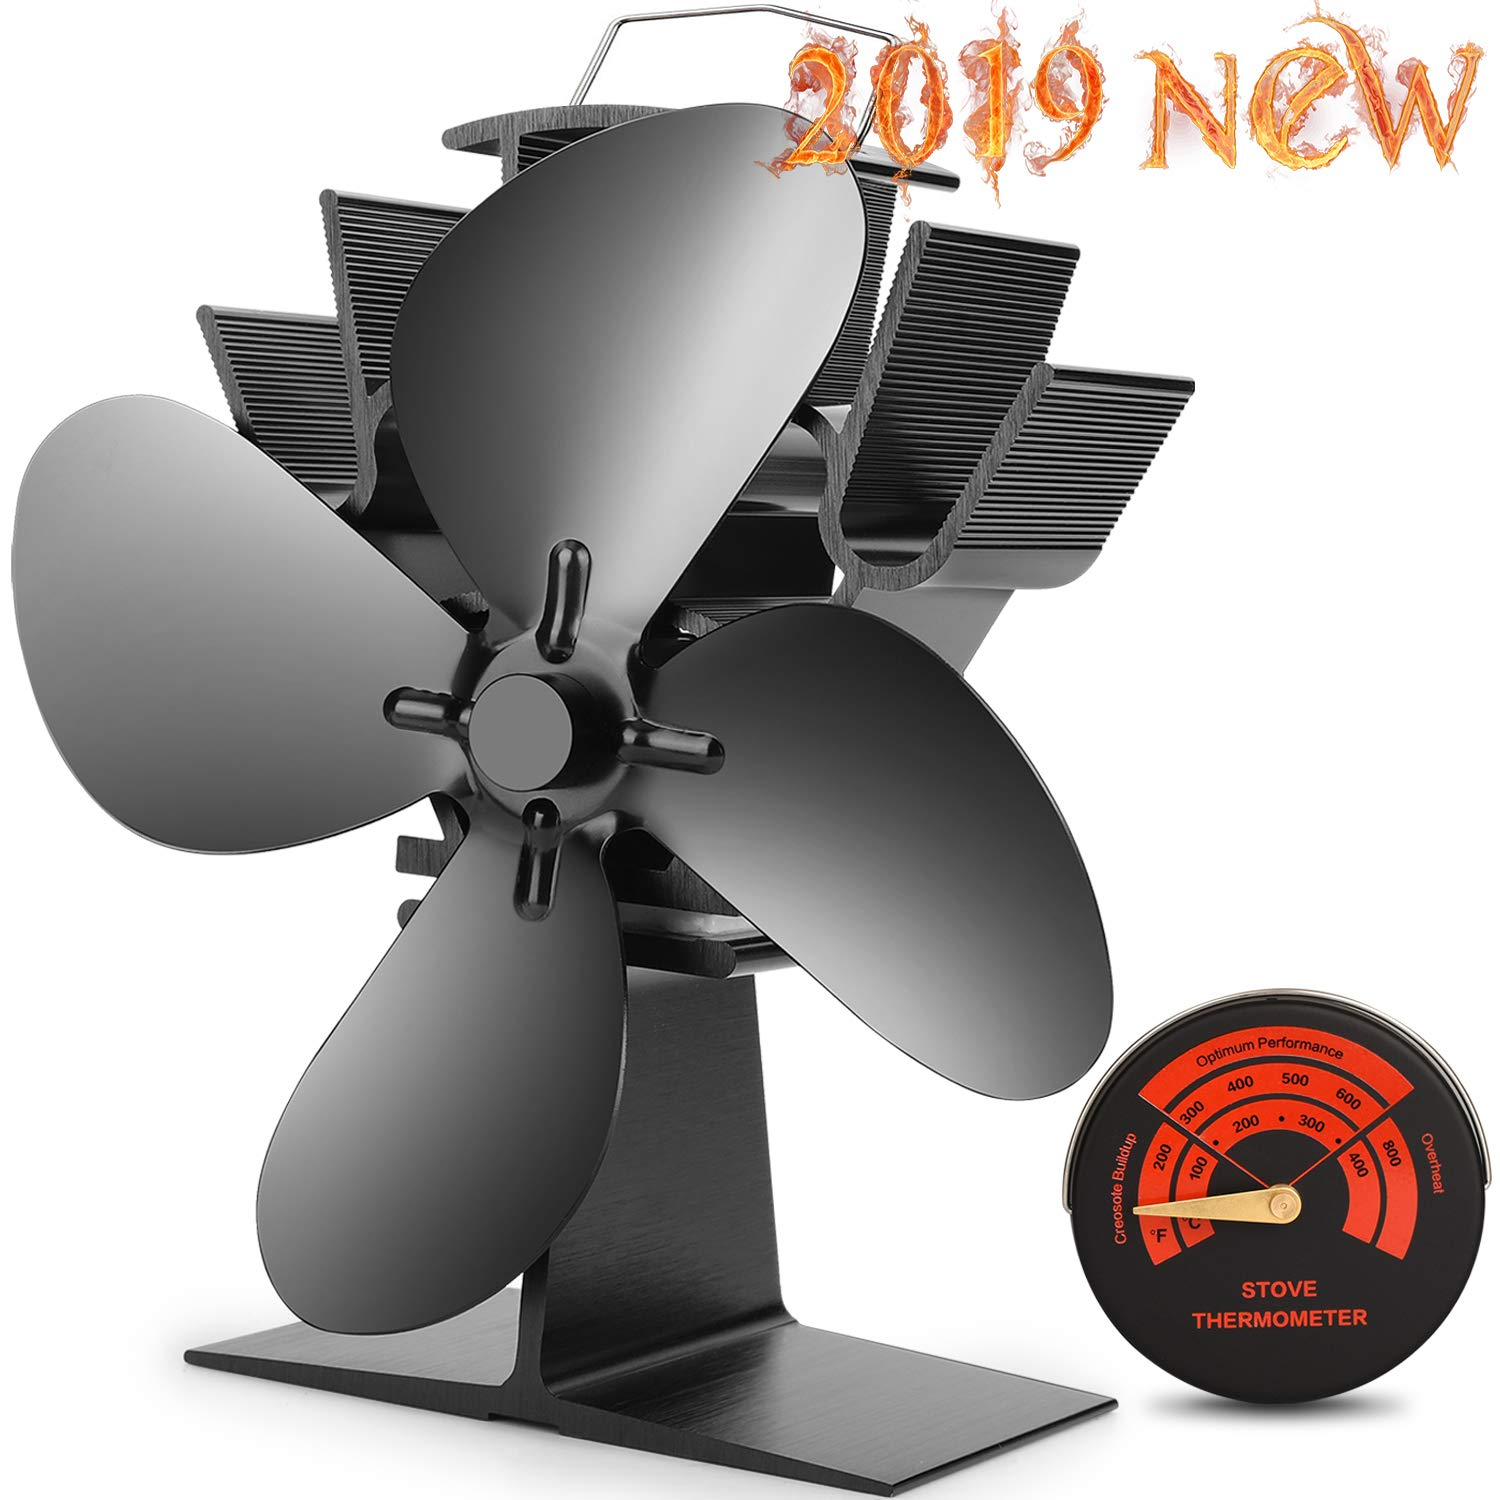 CWLAKON Heat Powered Stove Fan-2019 Upgrade Designed Silent Operation 4 Blades with Stove Thermometer for Wood/Log Burner/Fireplace-Eco Friendly and Efficient Heat Distribution(Black) by CWLAKON